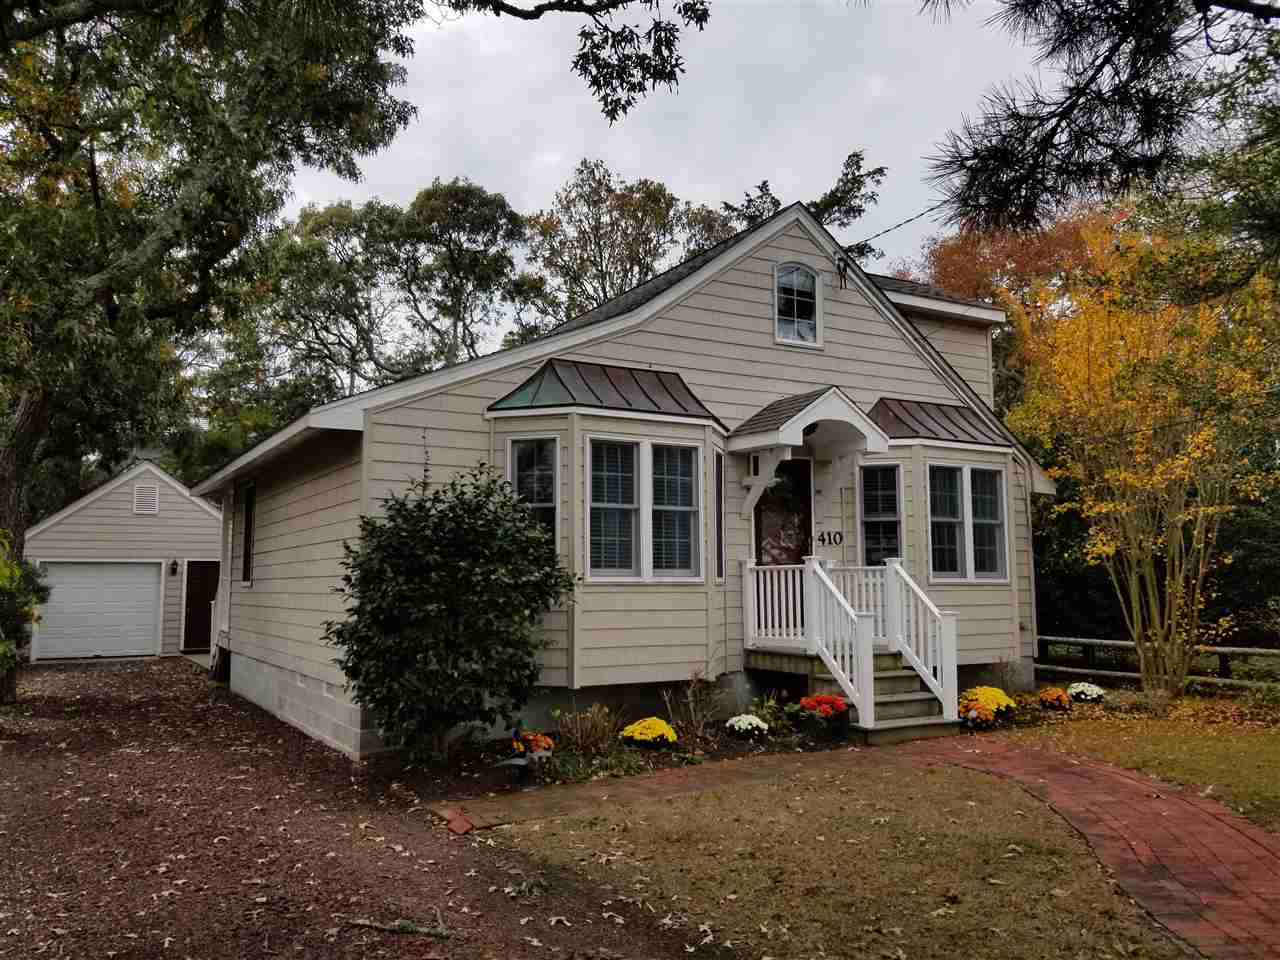 410 Oxford, Cape May Point, NJ 08212